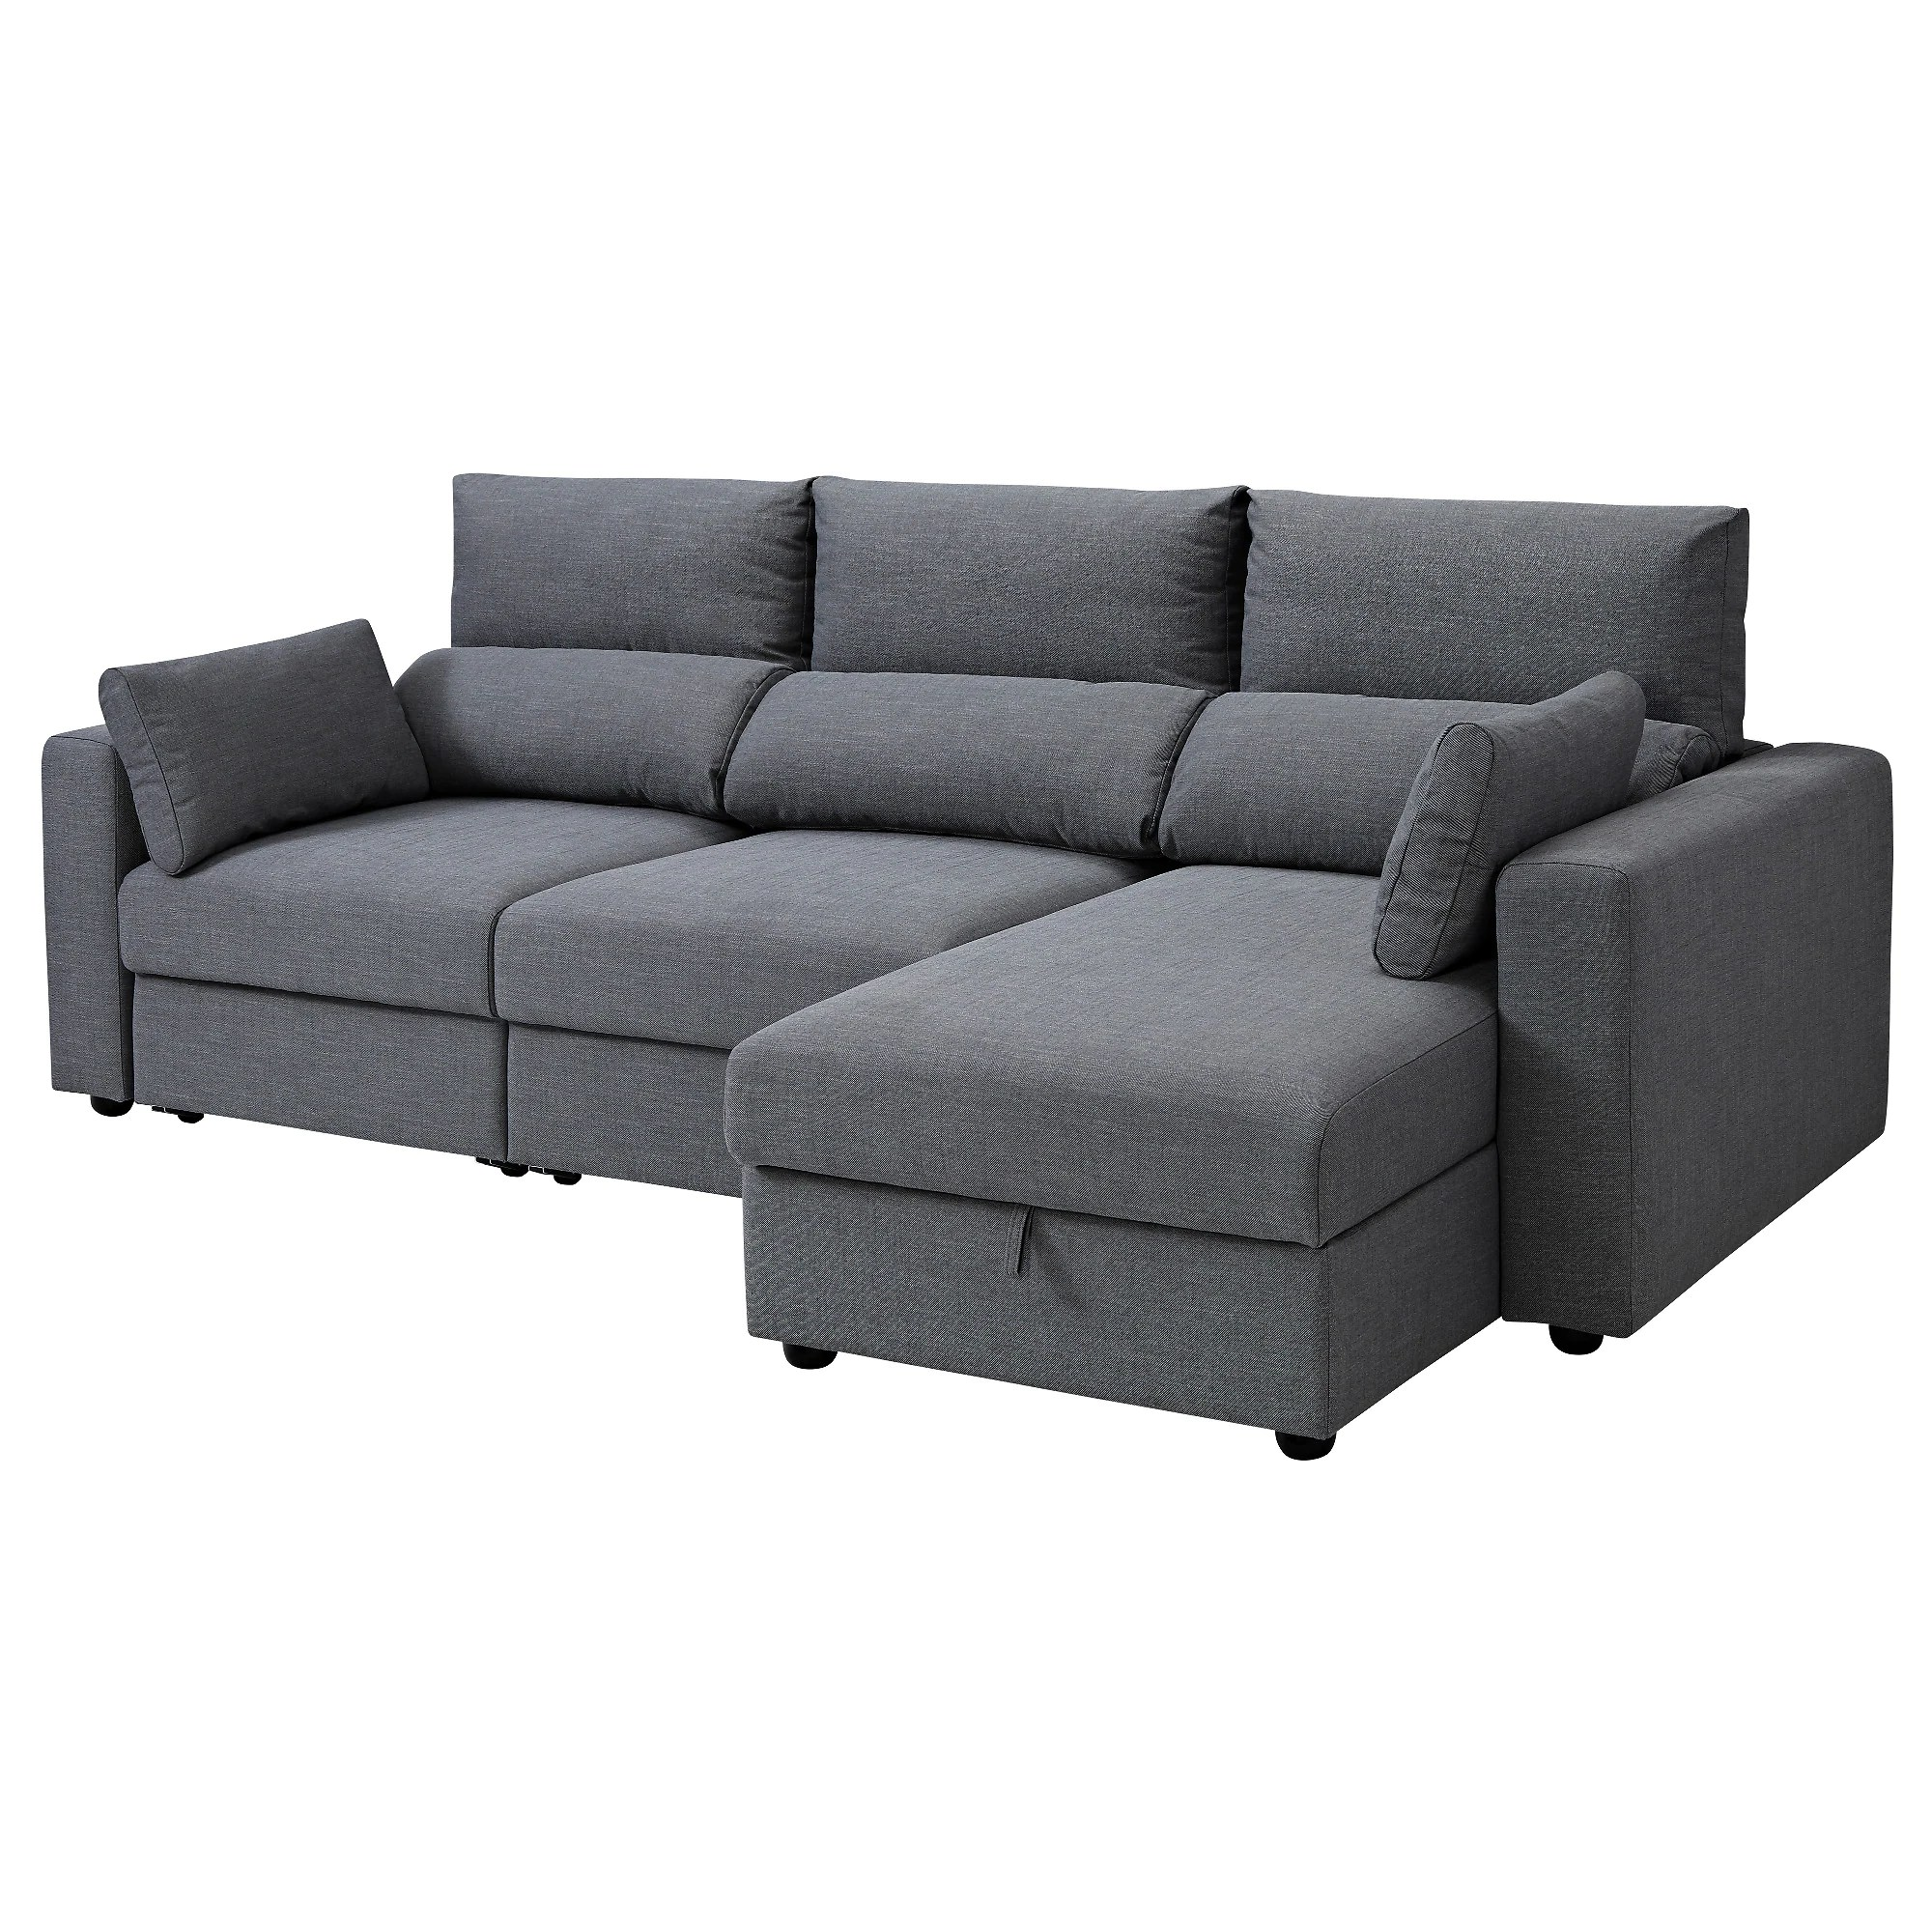 Chause Longue 3 Seat Sofa With Chaise Longue Eskilstuna Nordvalla Dark Grey